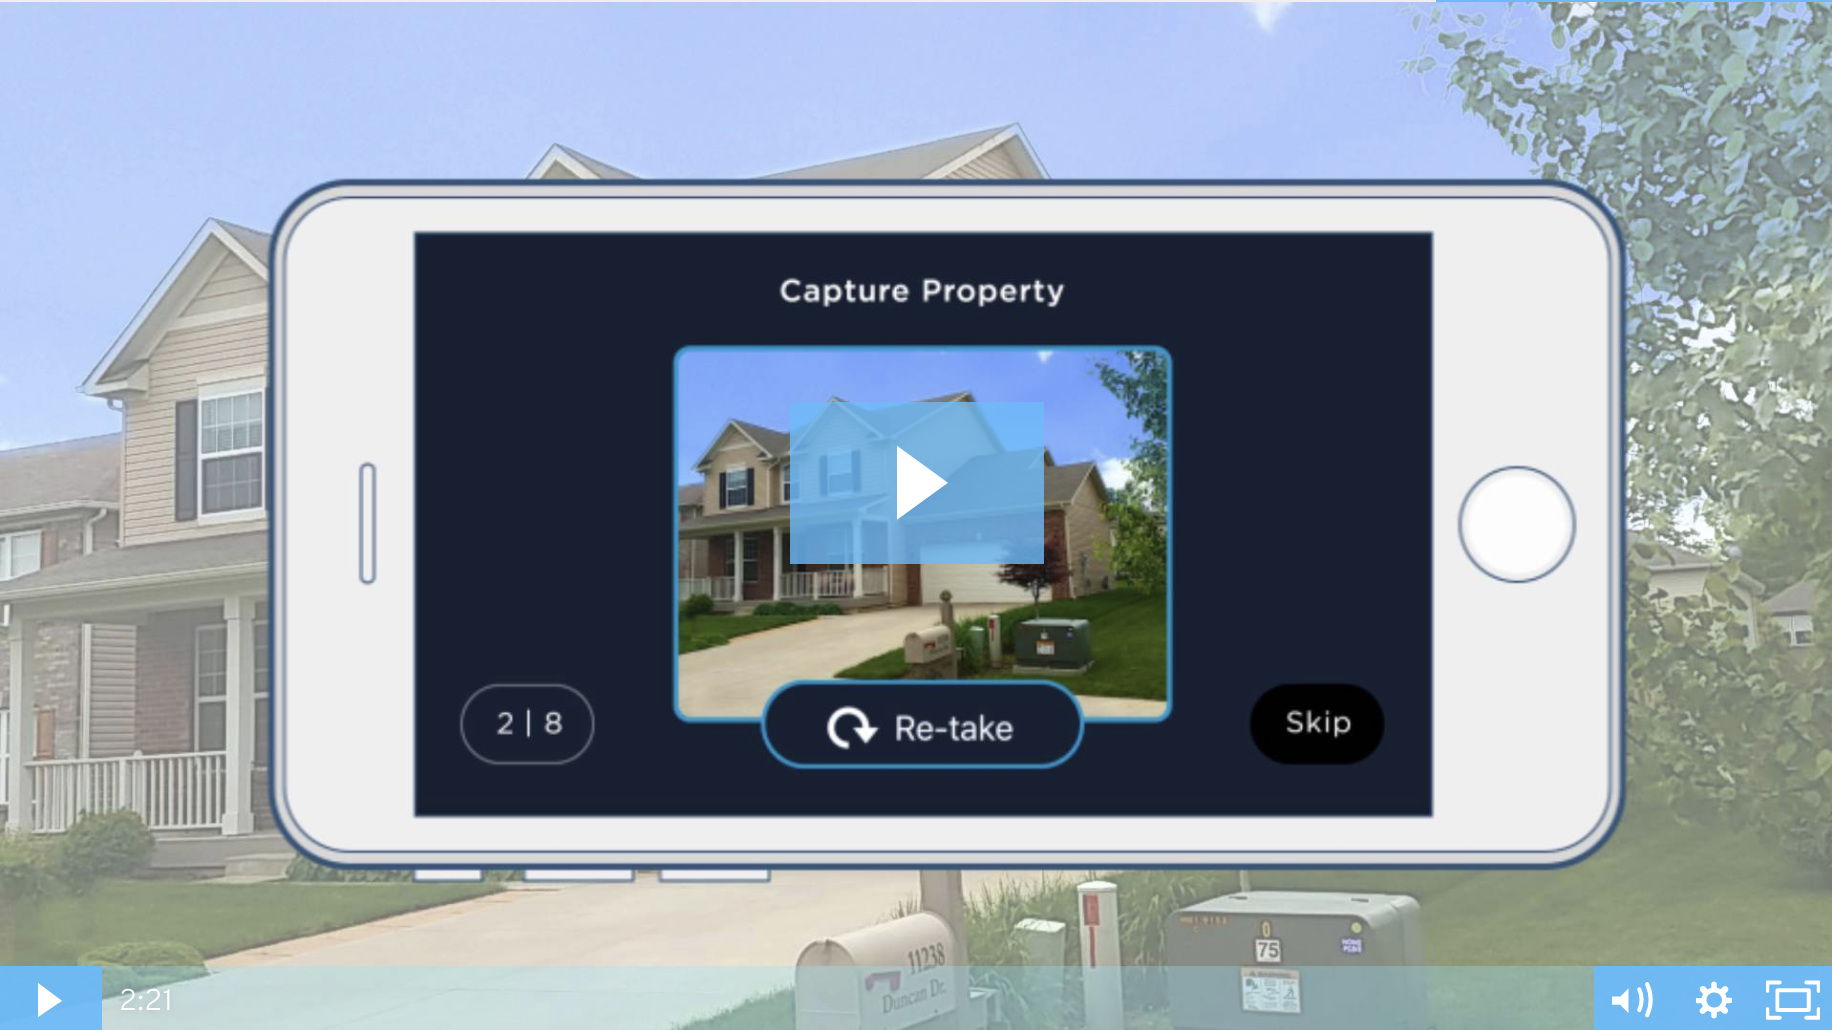 How to capture a property